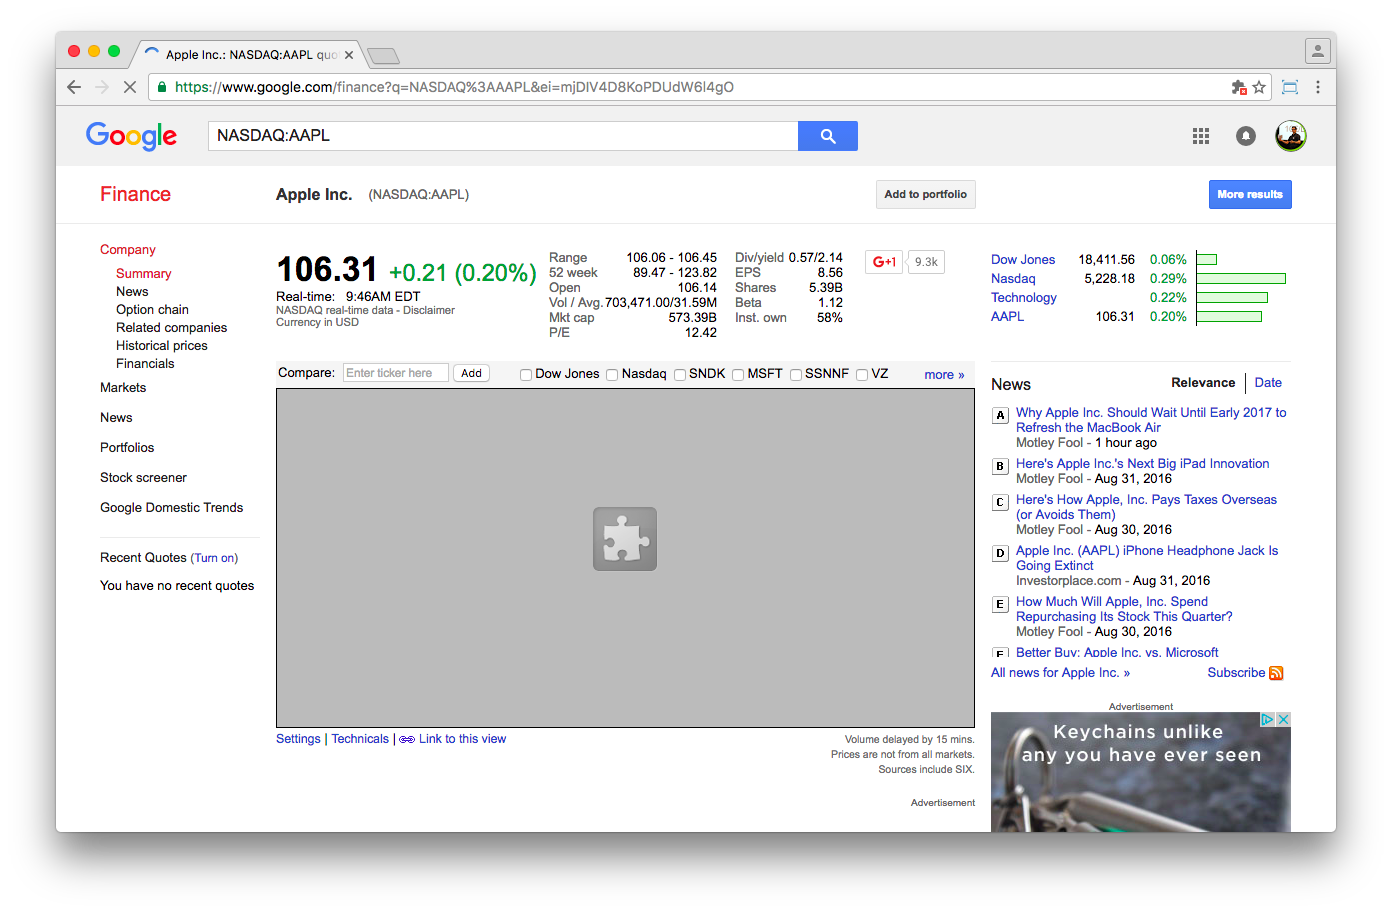 Viewing and playing with INTERACTIVE charts of AAPL stock is not possible without Adobe Flash Player